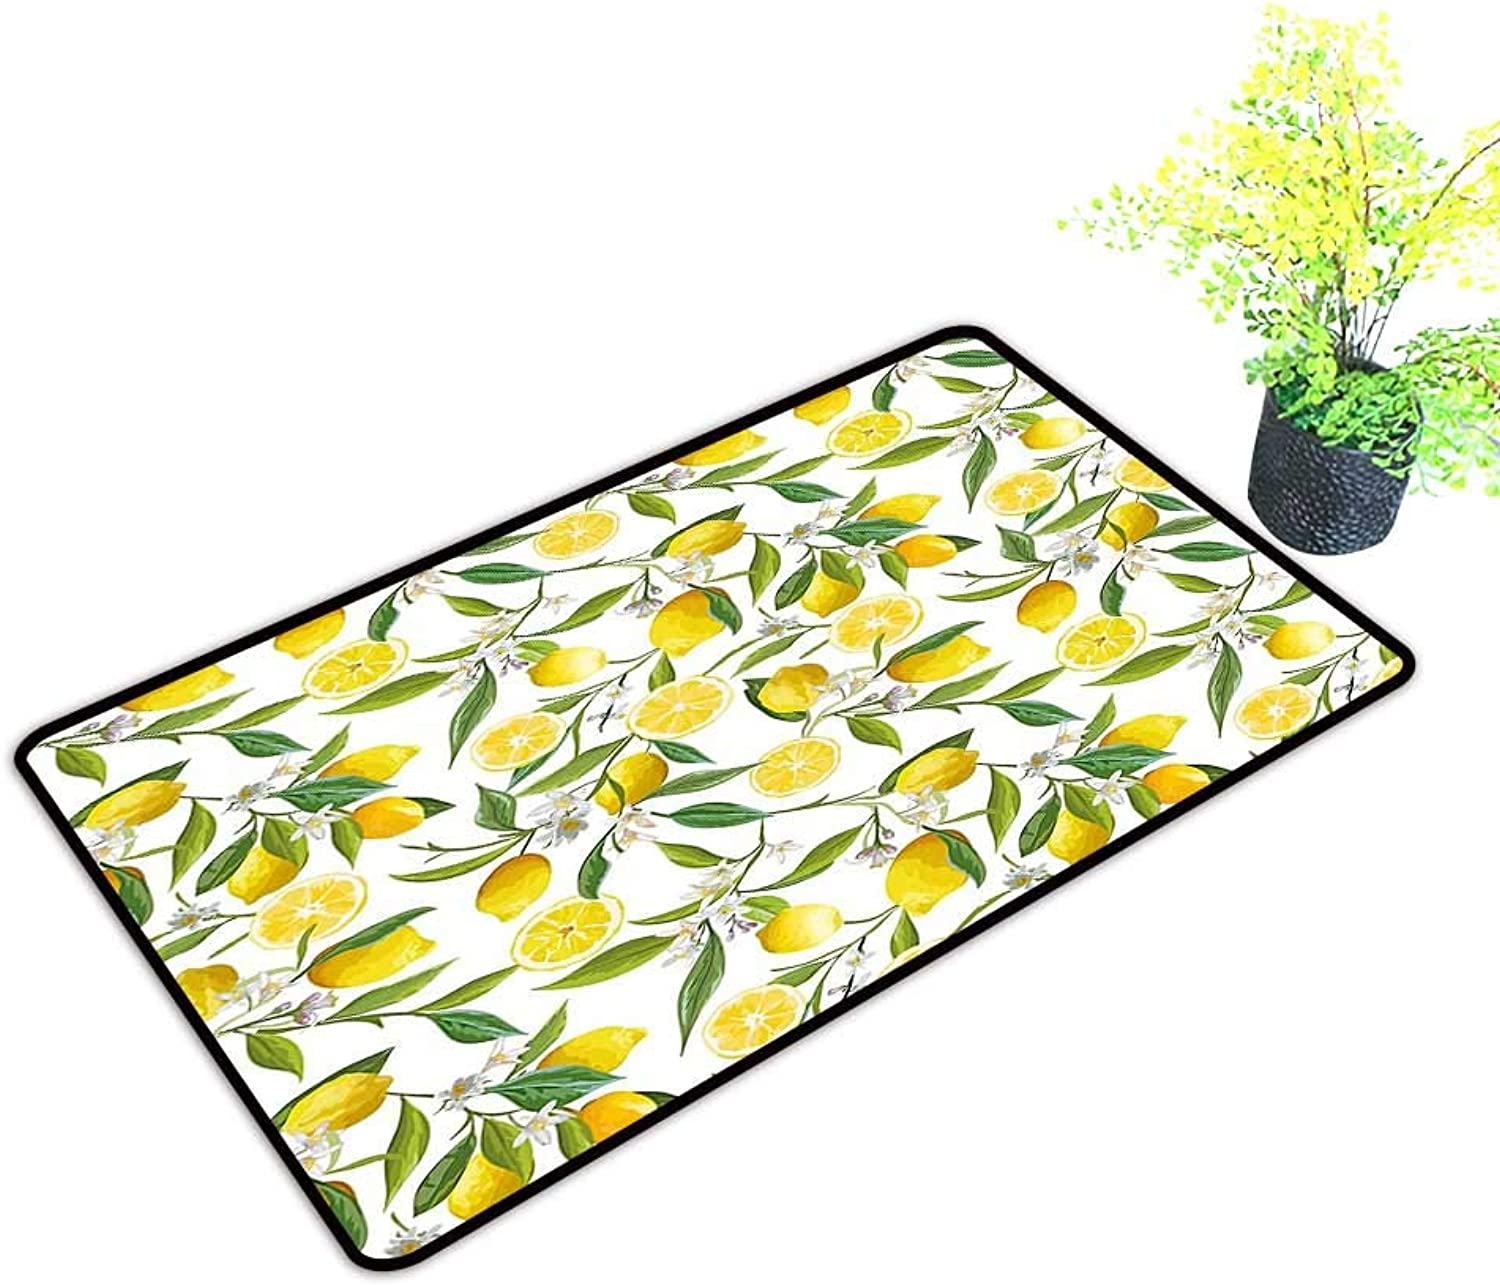 Gmnalahome Extra Thick Door Mat Lemon Tree Branches Yummy Delicious Kitchen Gardening Design Fern Green Yellow White Soak Up Water and Dirt W39 x H19 INCH